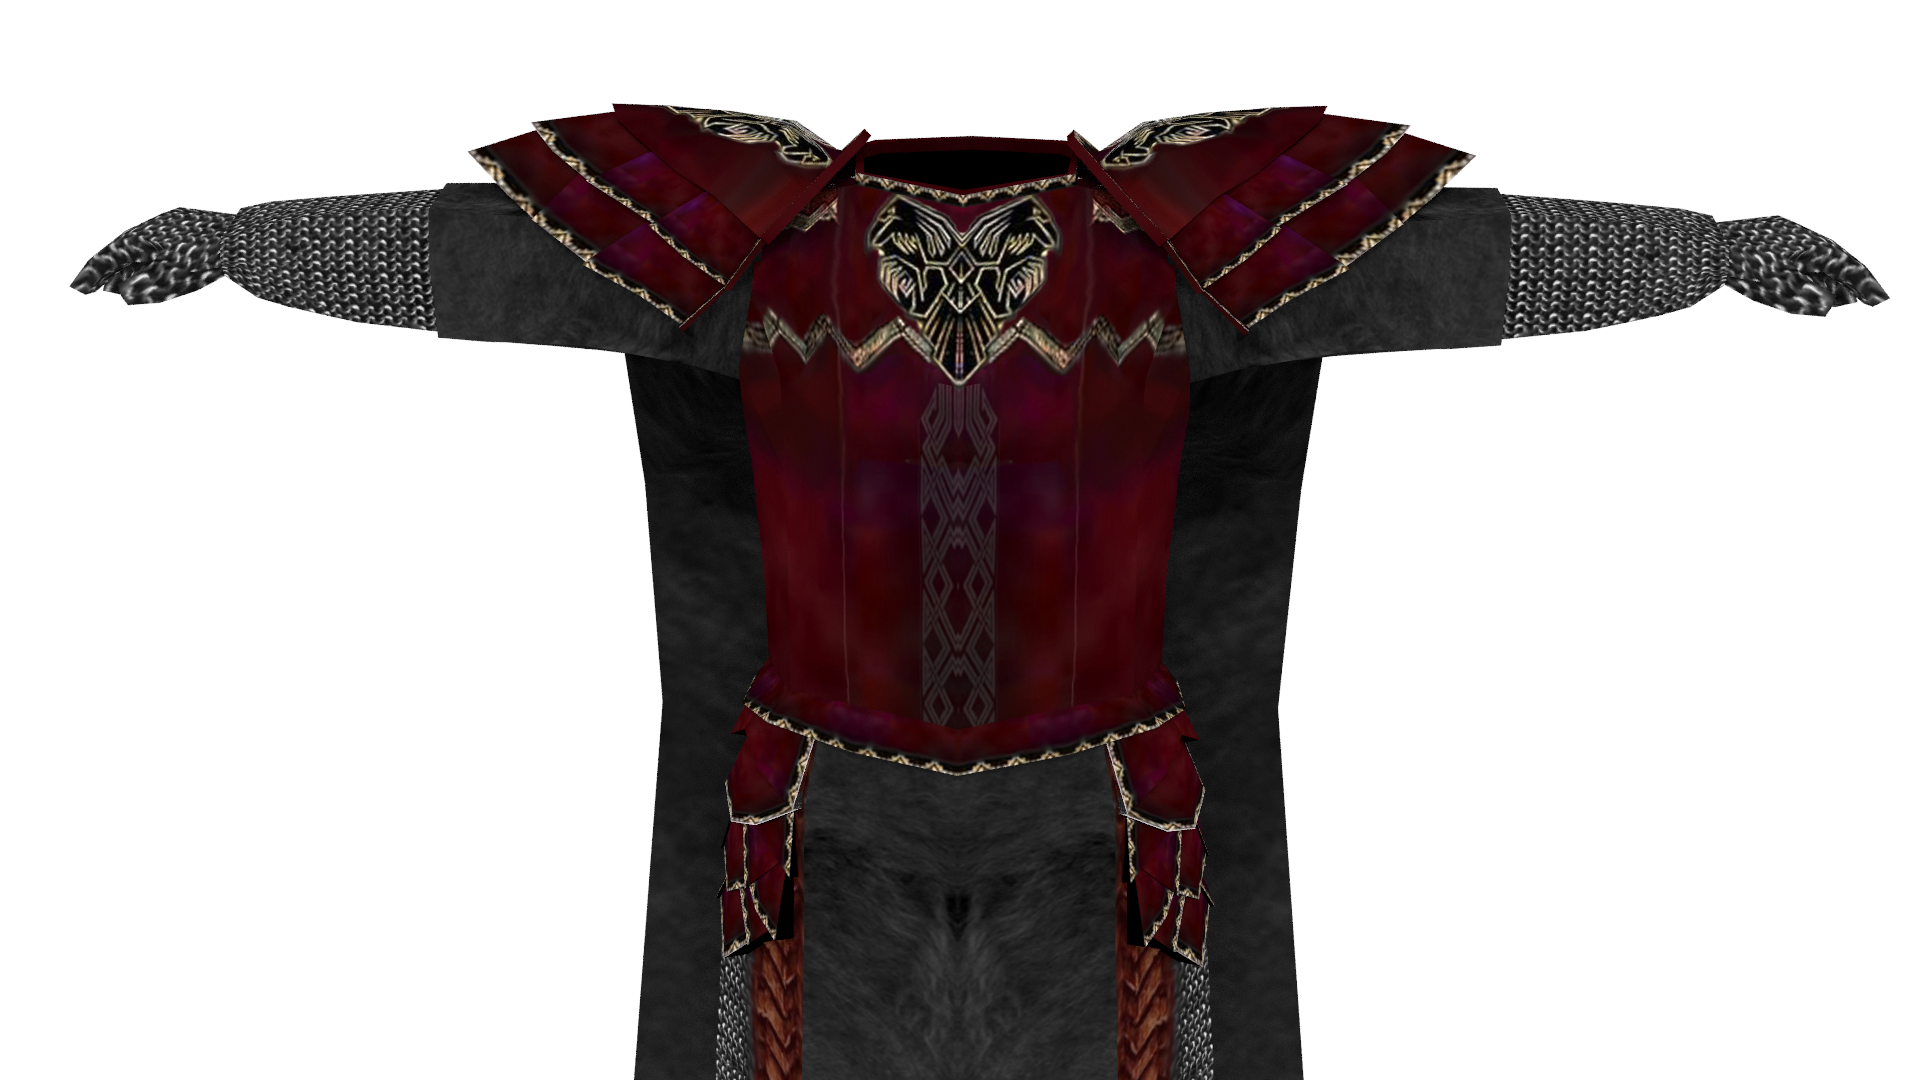 armour rendered